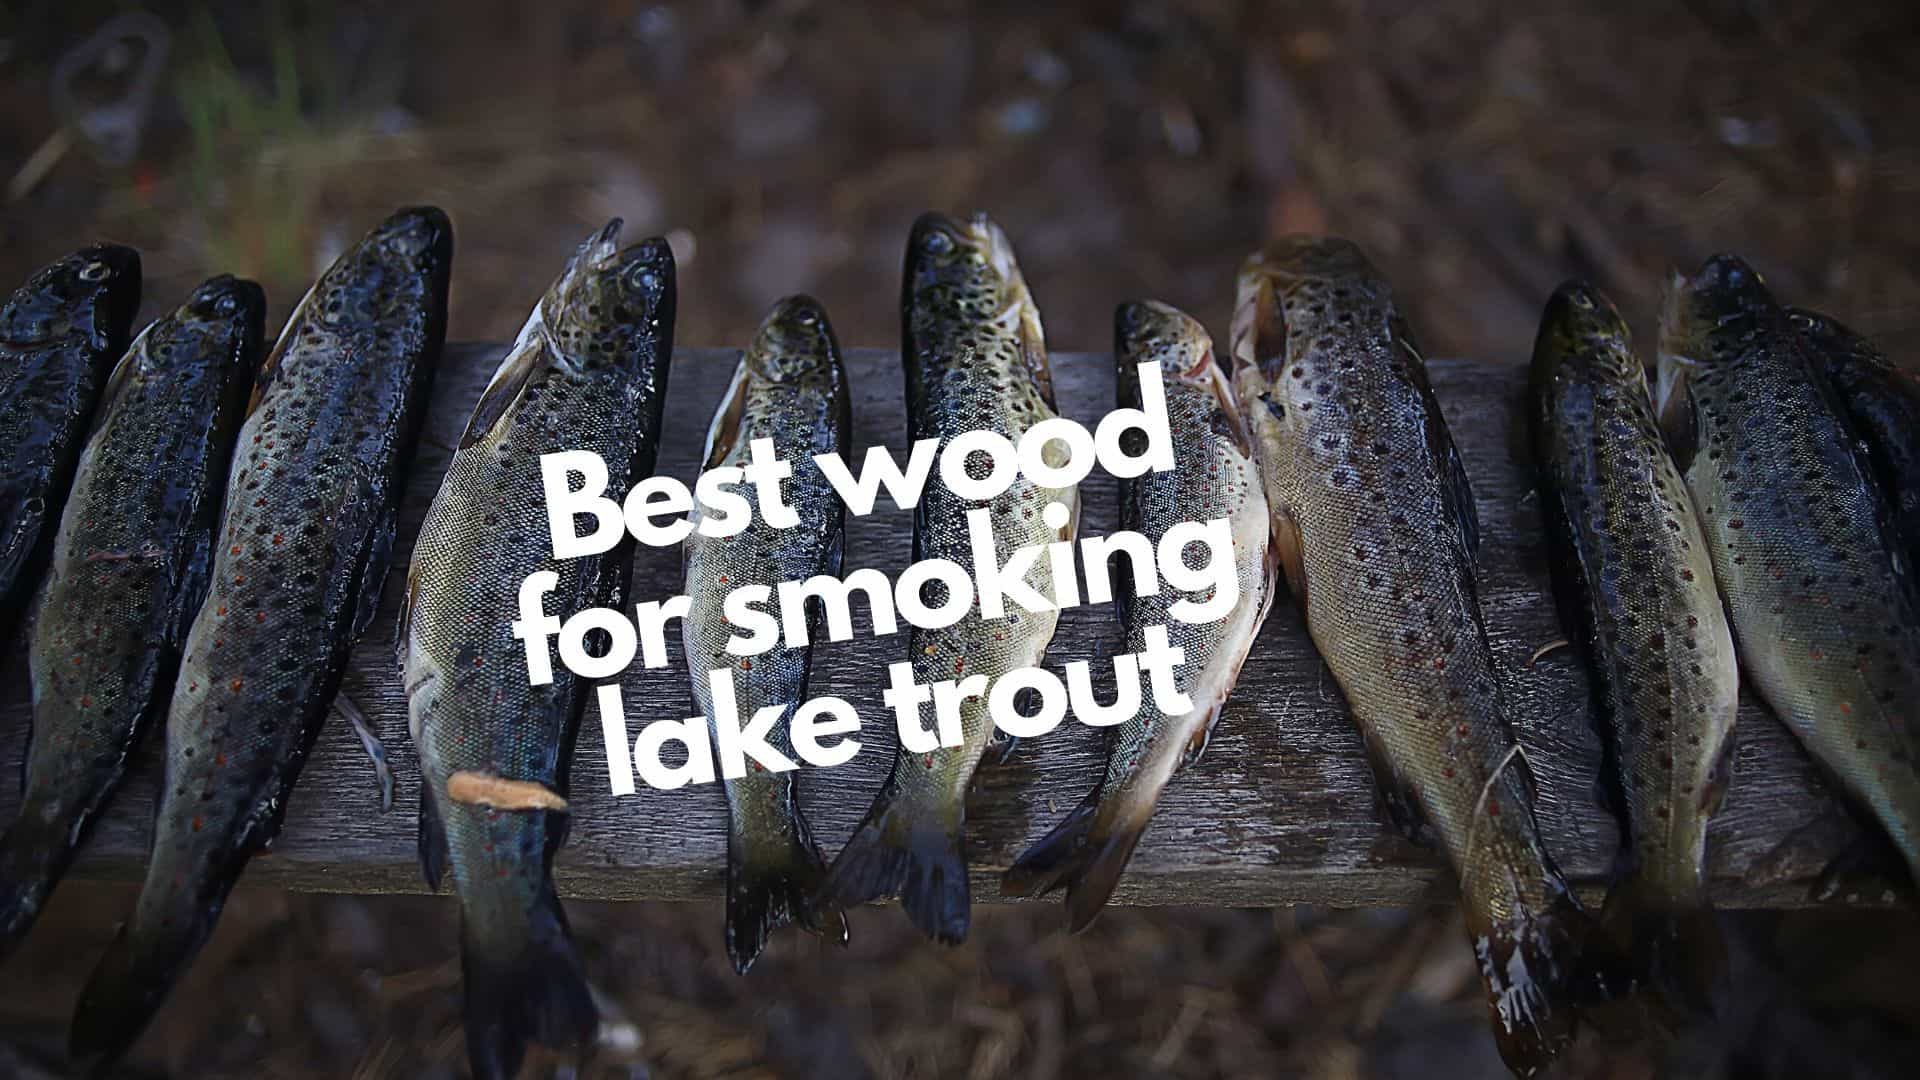 Best wood for smoking lake trout | 6 top options & 2 to really avoid